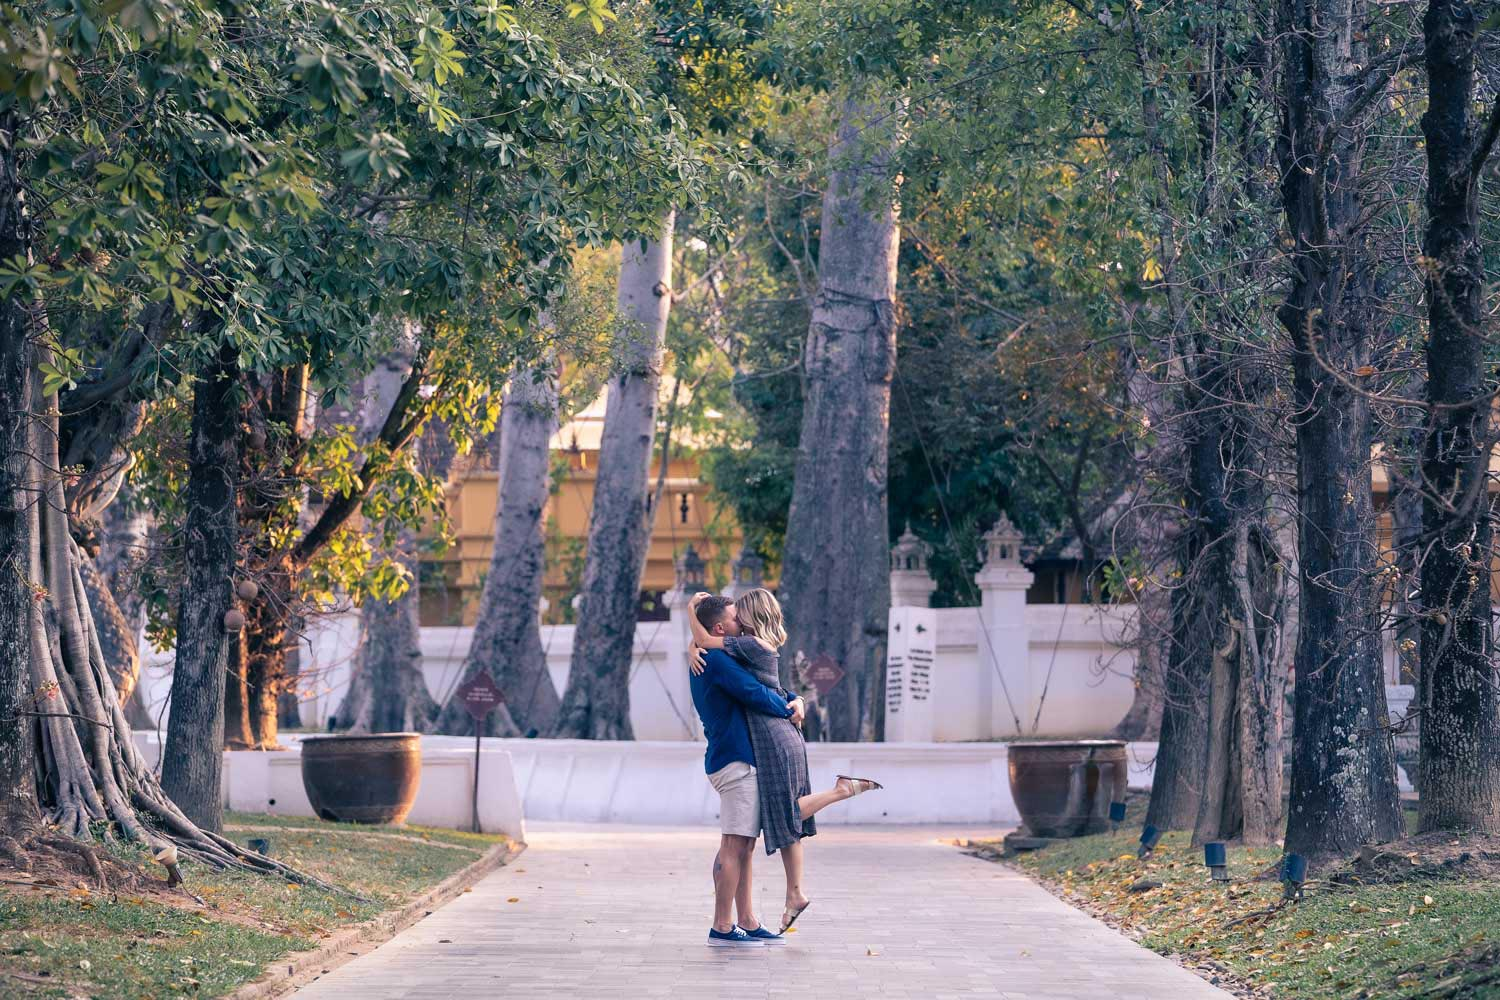 Chiang Mai proposal photo shoot